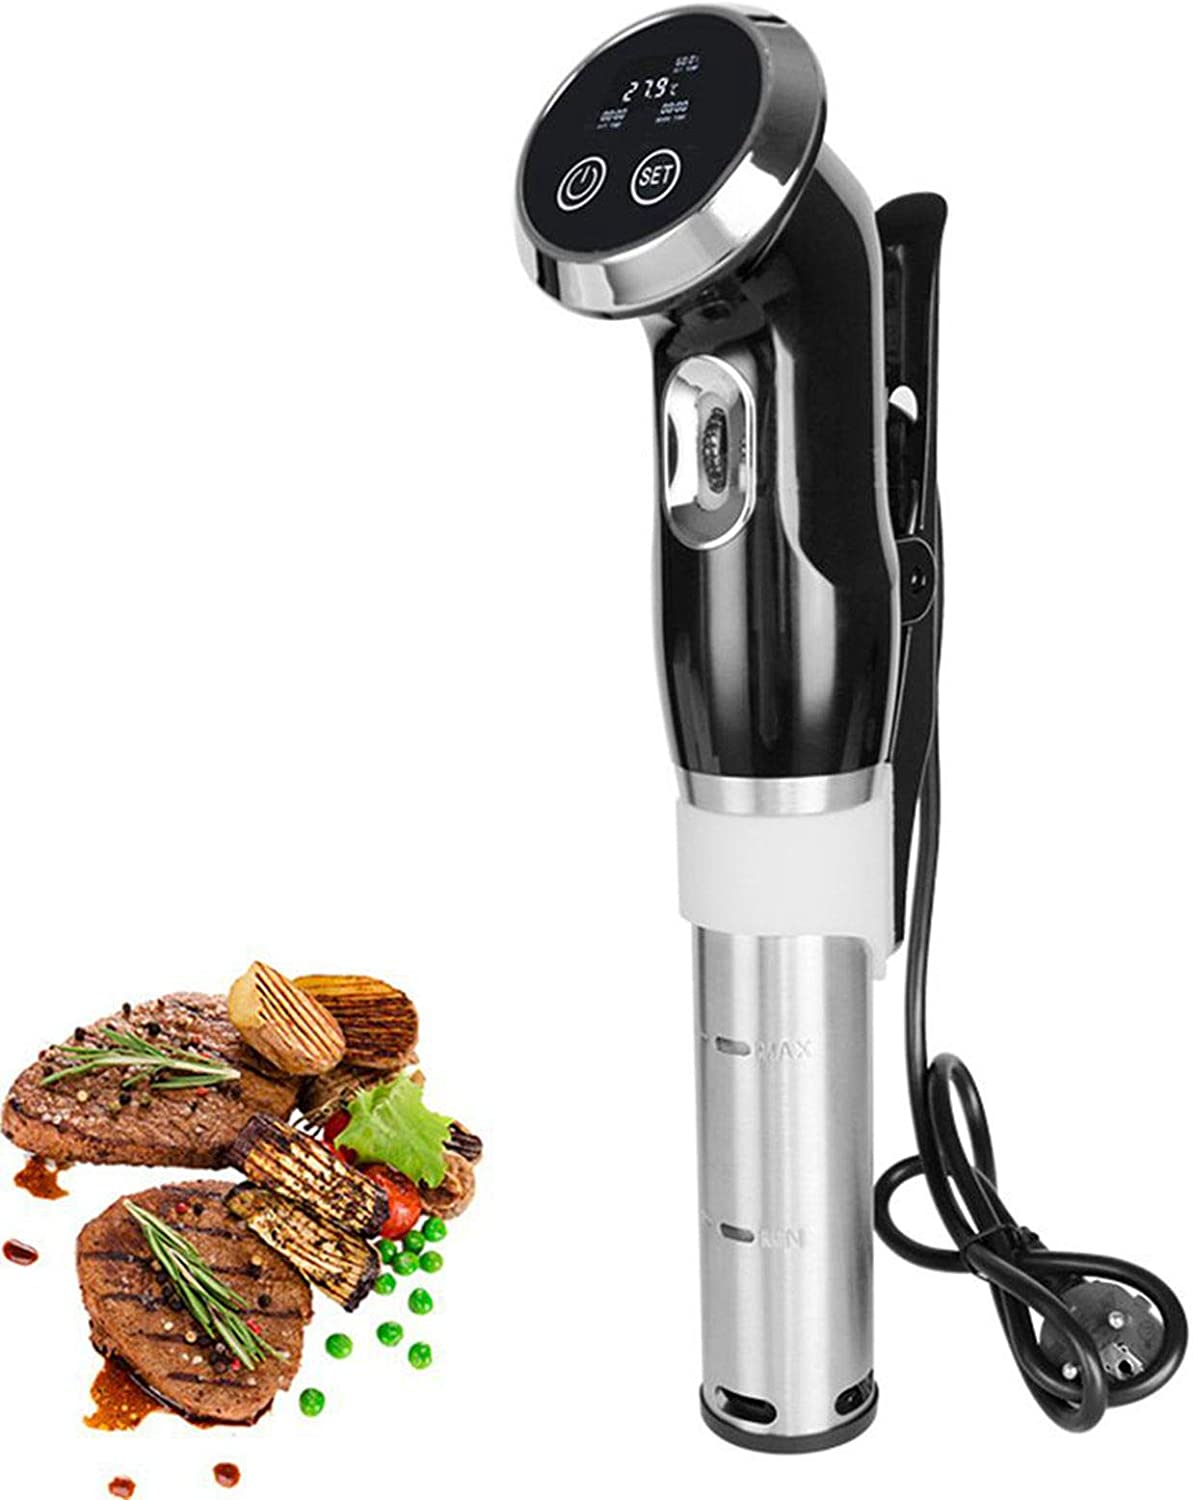 Sous Vide Cooker 1500W Immersion Circulator Vacuum Food Cooker with Adjustable Clamp and LCD Digital Touch Display (110V, US Plug)